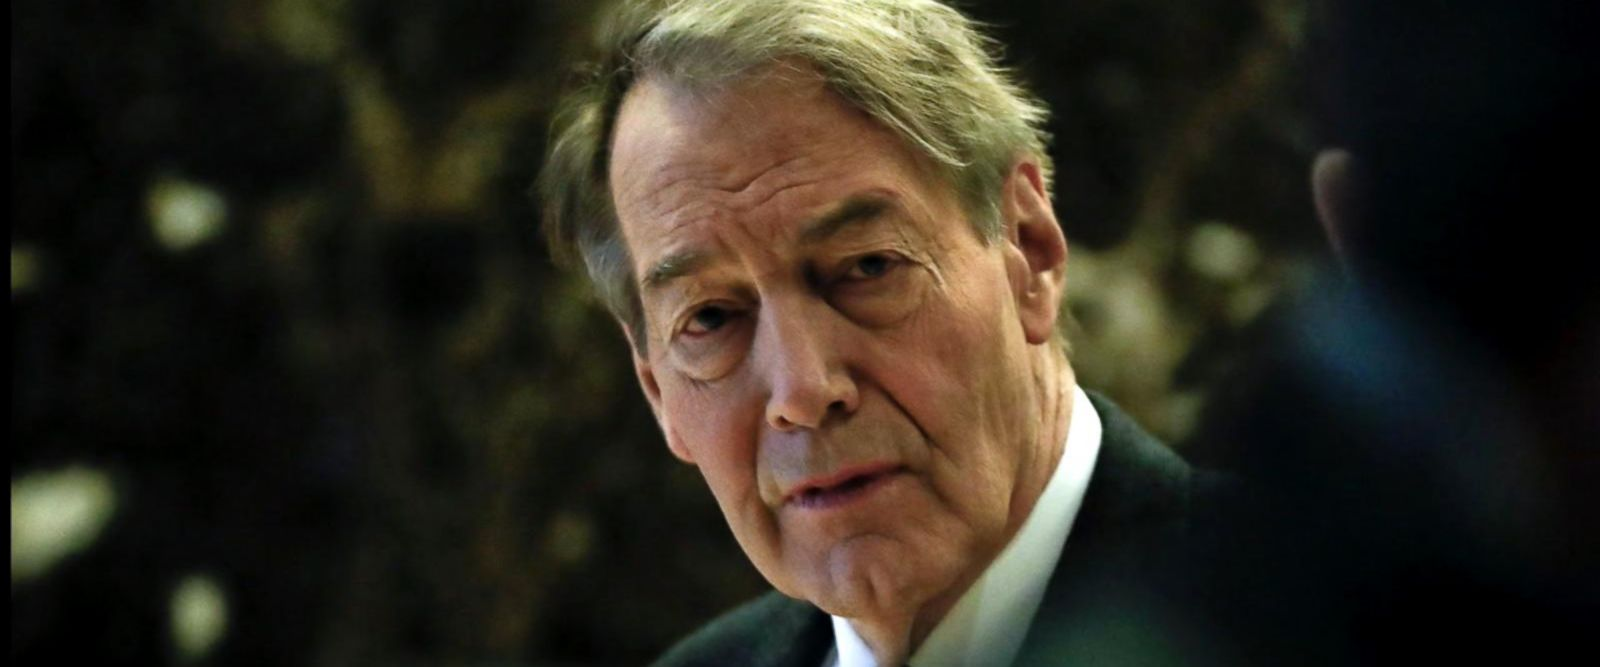 VIDEO: CBS has fired veteran journalist Charlie Rose after more than eight women accused him of sexual misconduct in interviews with the Washington Post and Business Insider.